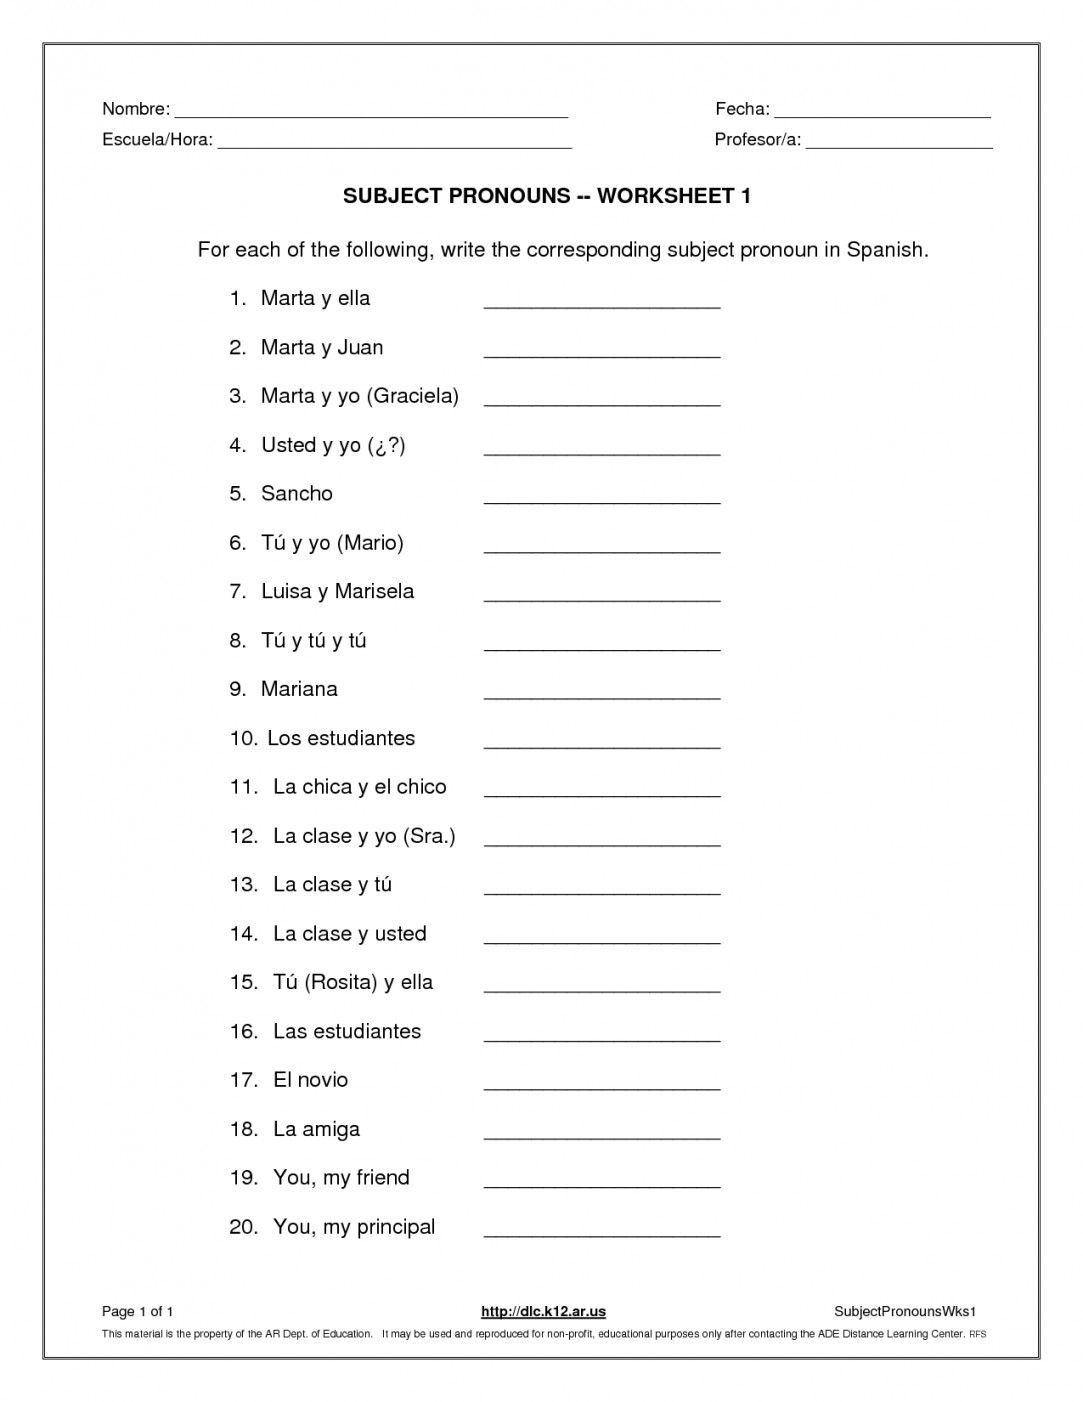 Subject Pronouns In Spanish Worksheet